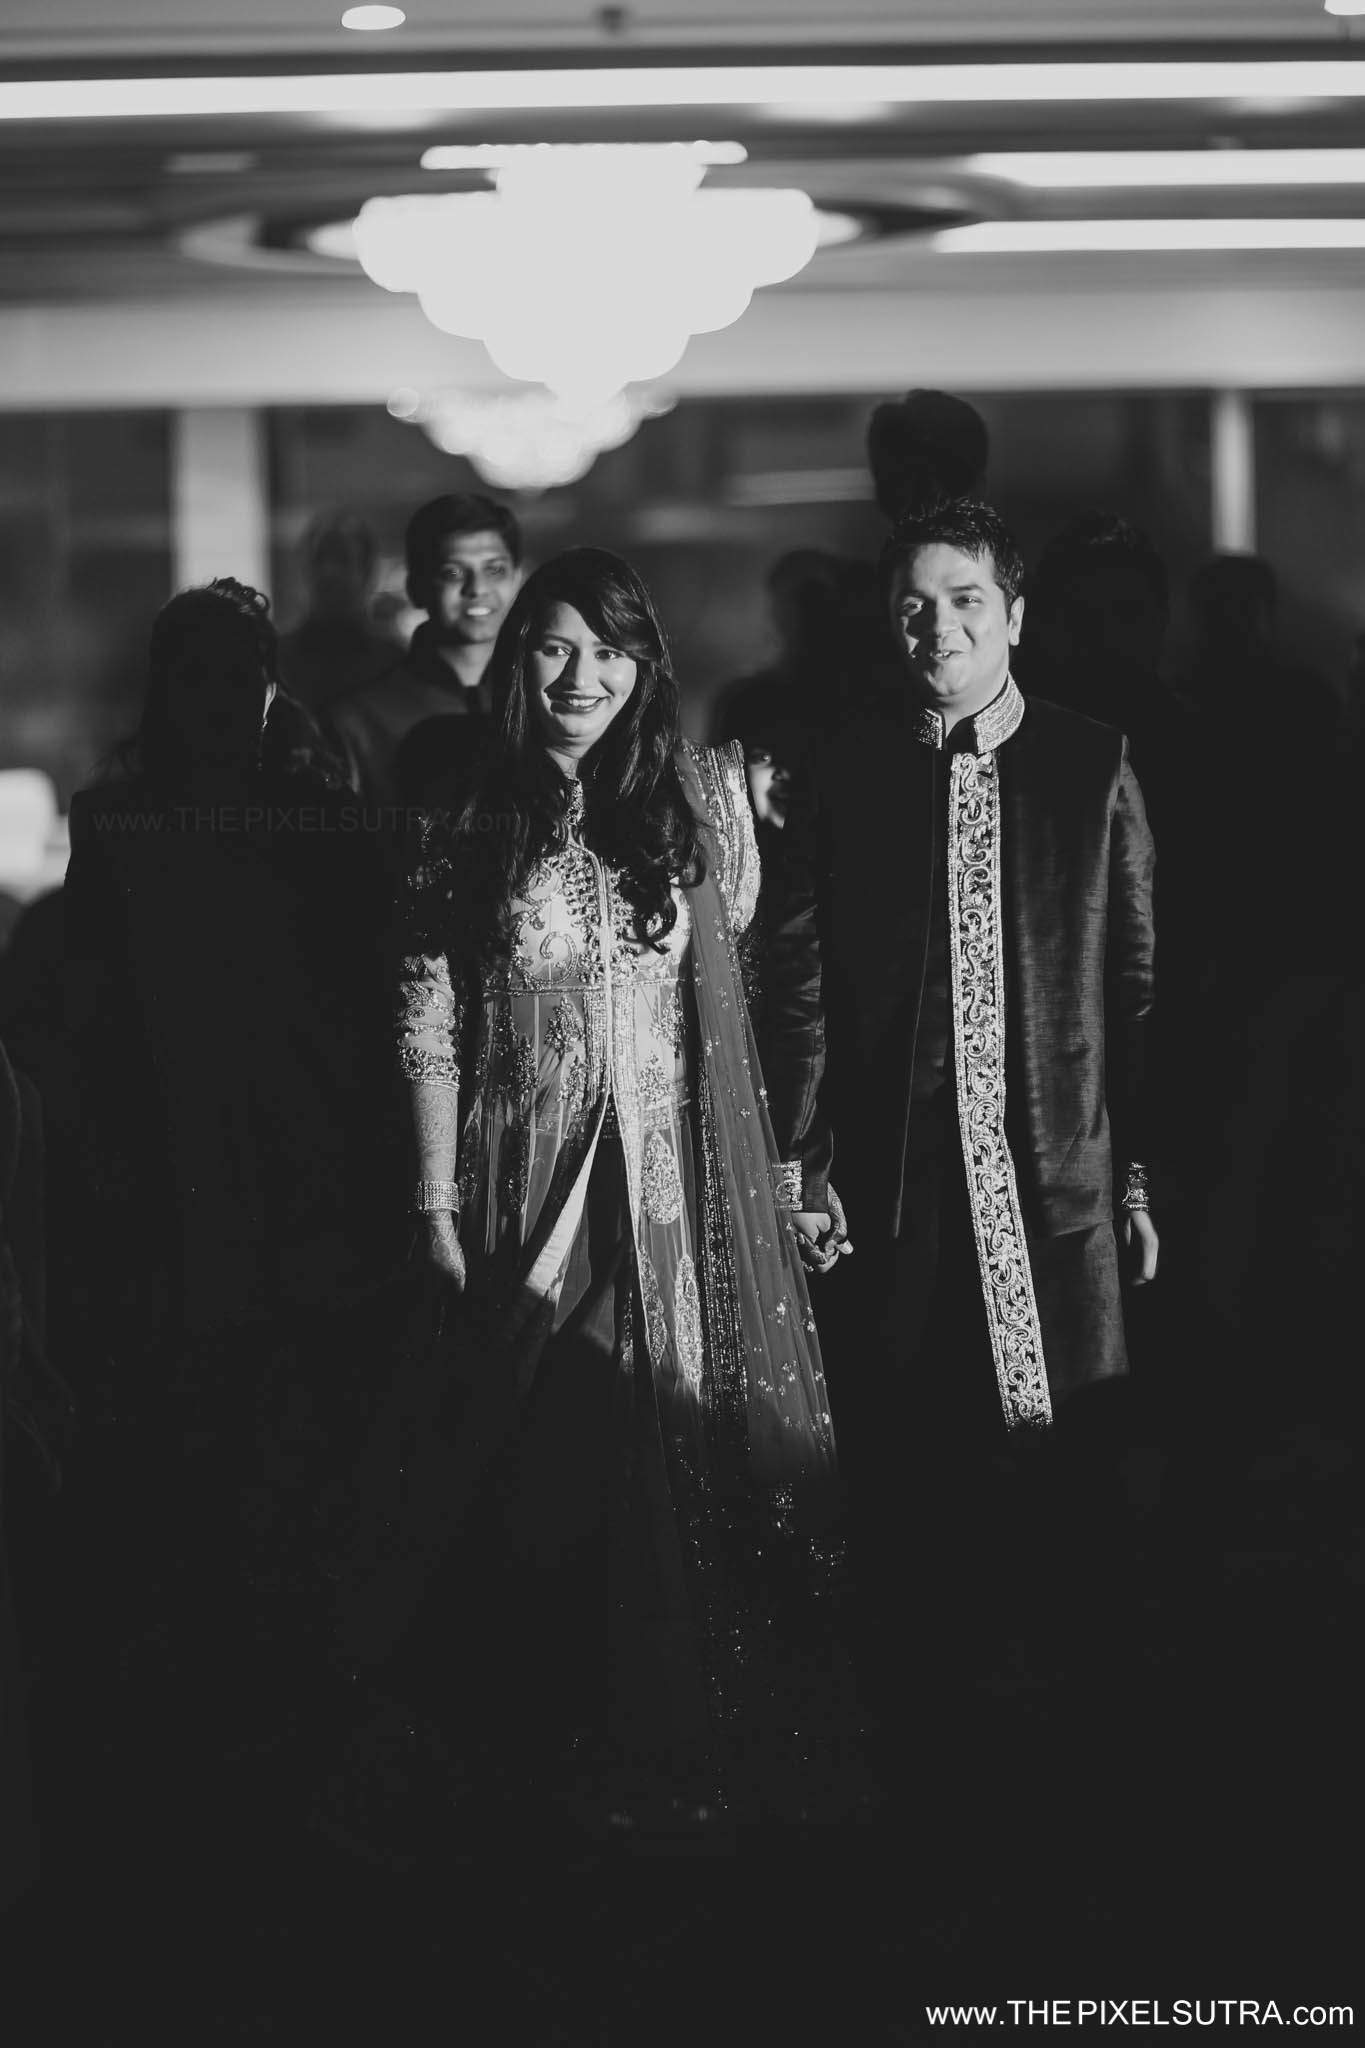 The Pixel Sutra Biral x Shruti Candid Wedding photographer Mumbai Best  (8).jpg